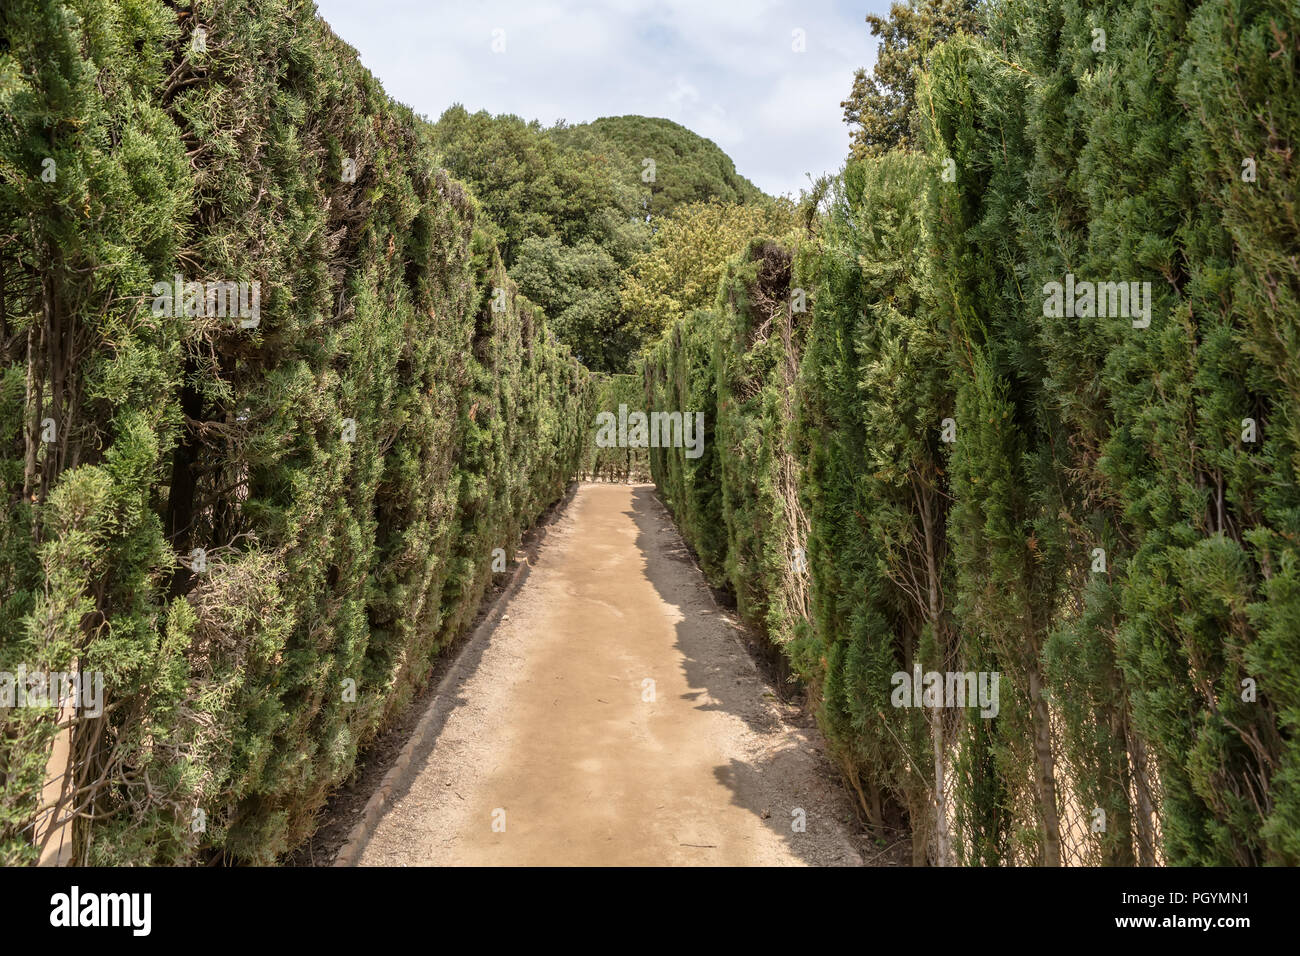 Path through trimmed cypress trees of hedge maze in Labyrinth Park of Horta. The maze has a trapezoidal shape similar to Minotaur labyrinth. - Stock Image